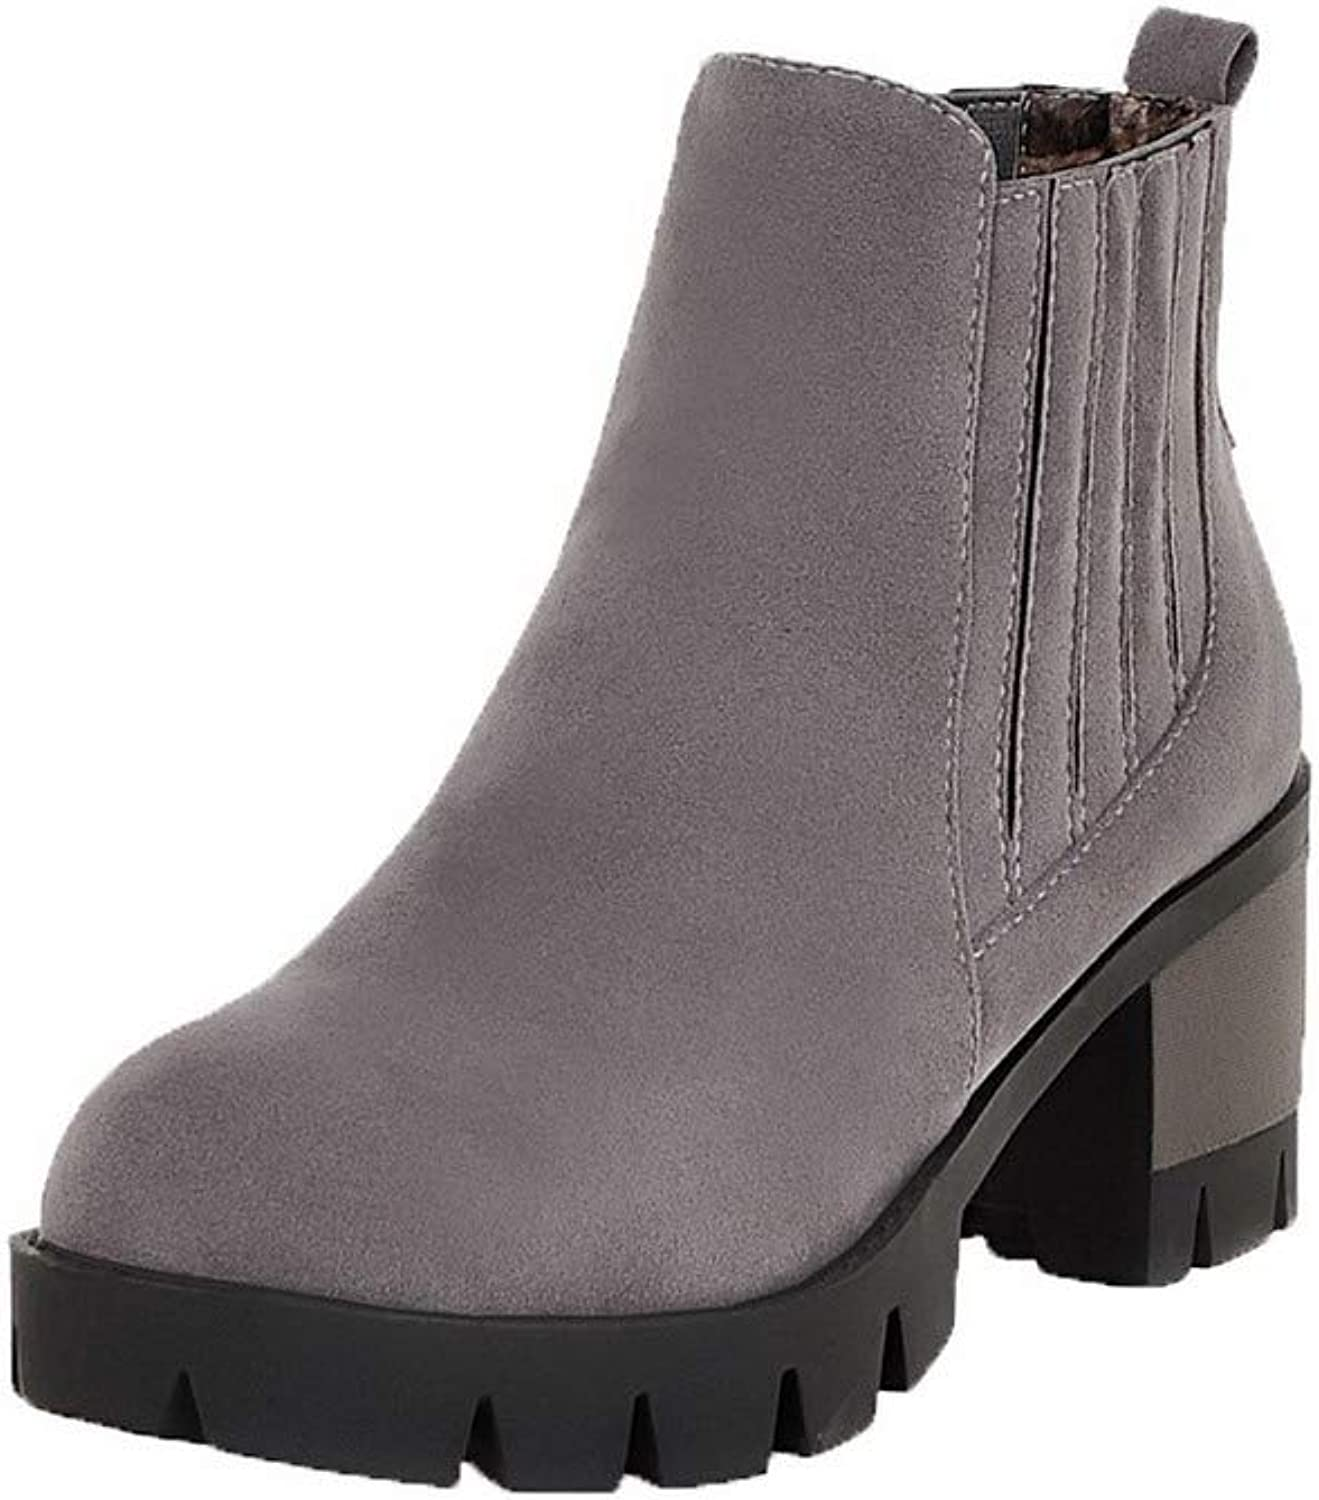 WeenFashion Women's Frosted Ankle-High Solid Pull-On Kitten-Heels Boots, AMGXX110886